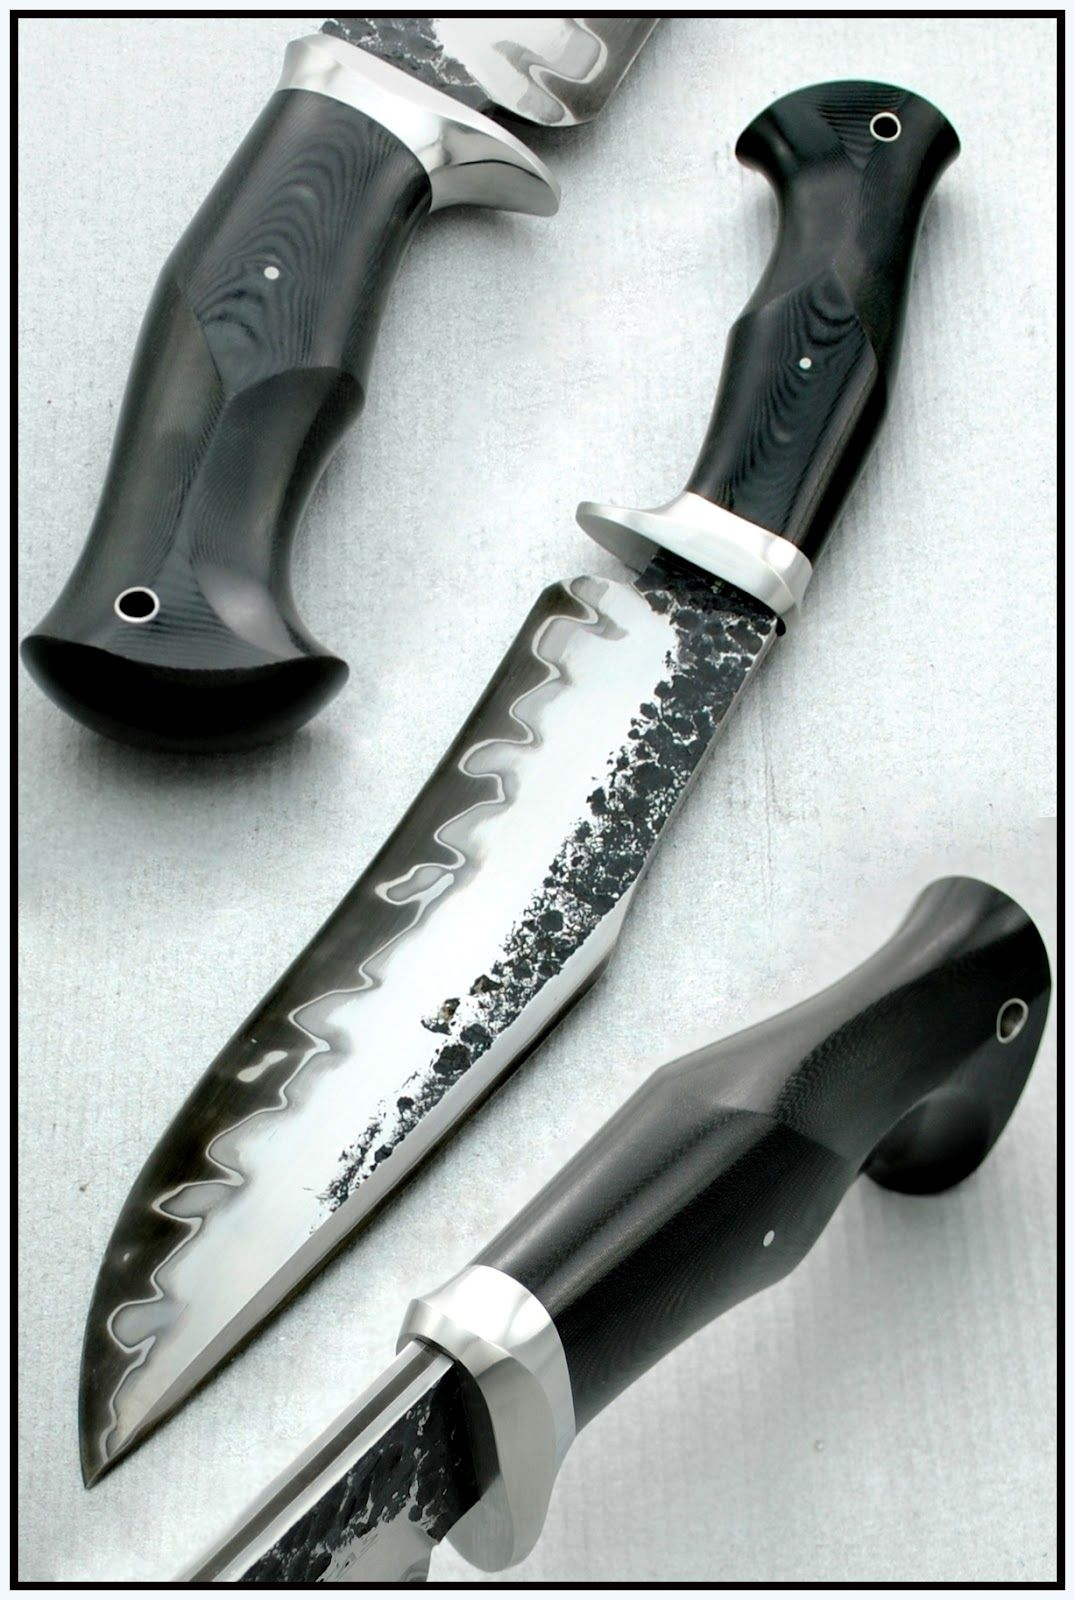 Show me your custom camp knife/chopper. - Page 33 | *Knife Designs ...